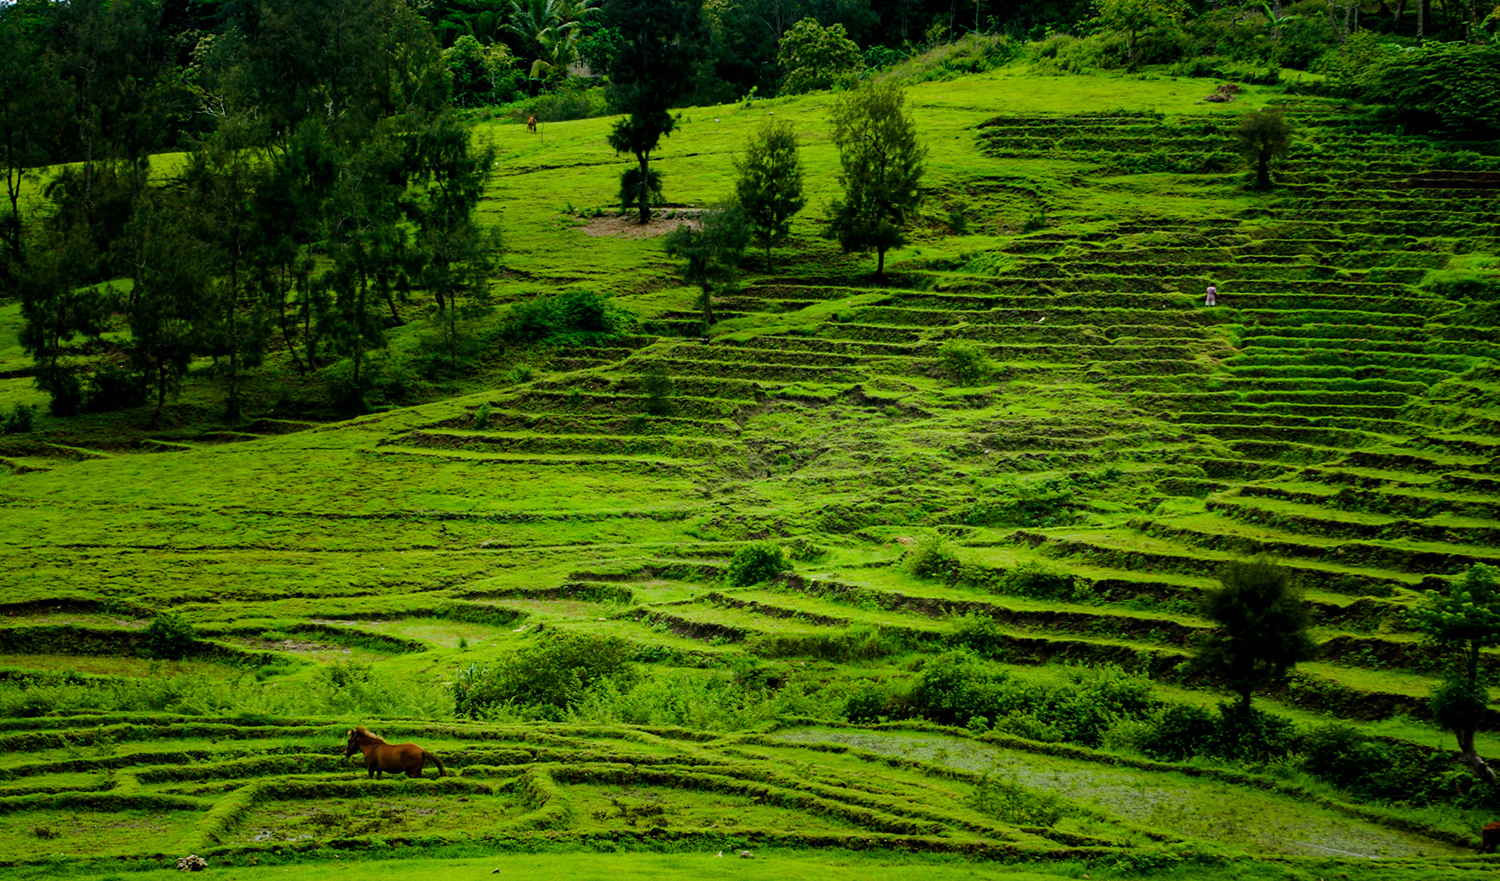 <p>A farmer tends to his terraced crops in central Timor-Leste's highlands. </p>